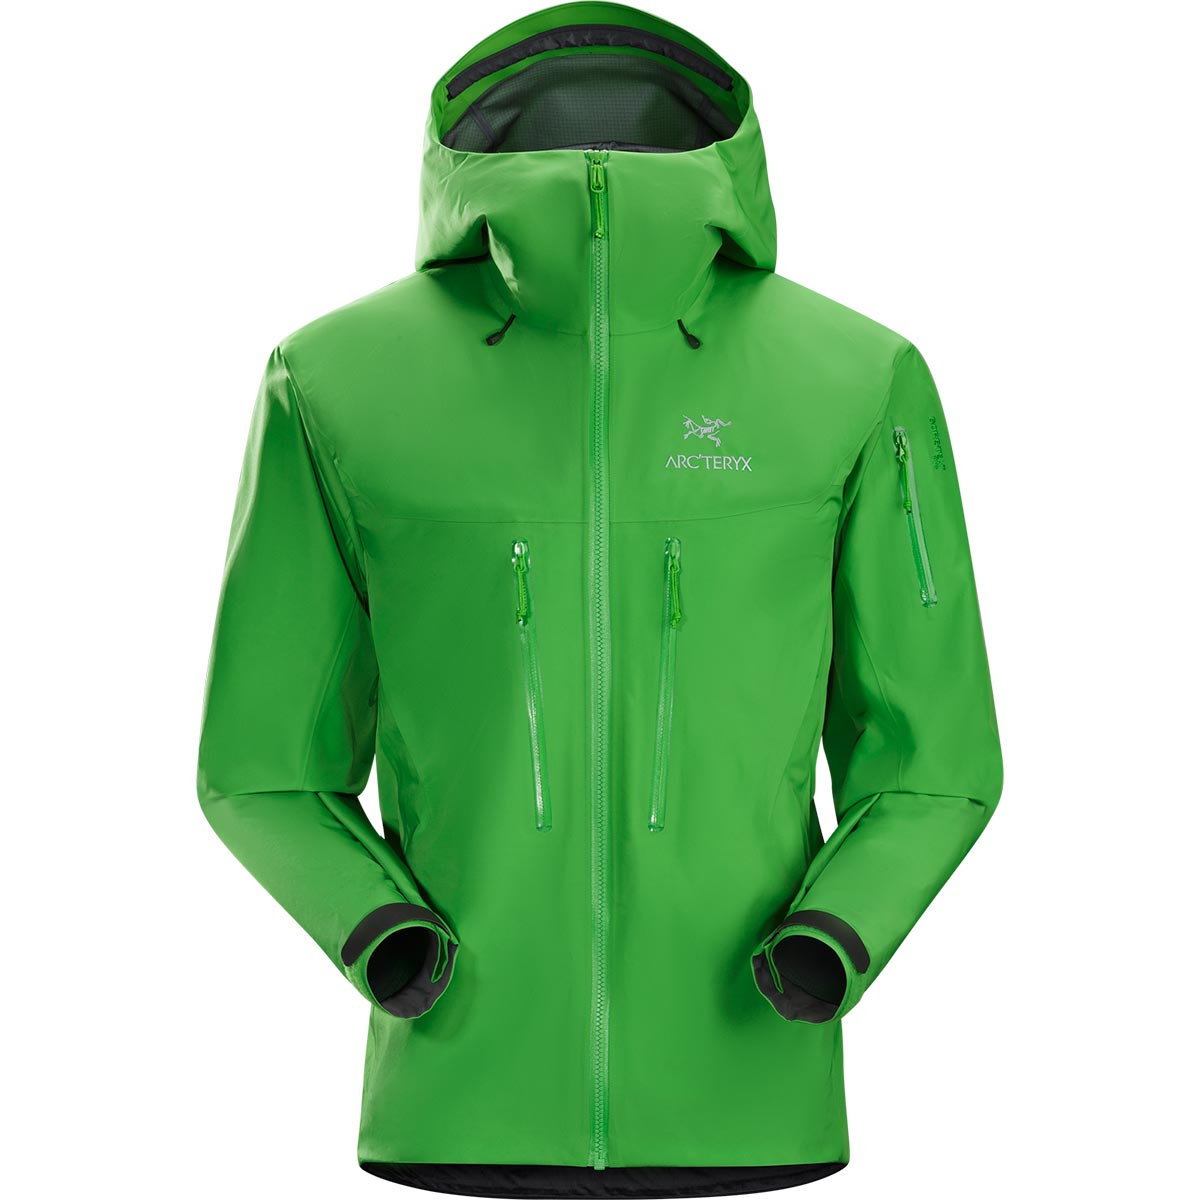 aaade1839ff Arc'teryx Alpha SV Jacket, men's, discontinued Spring 2017 colors ...